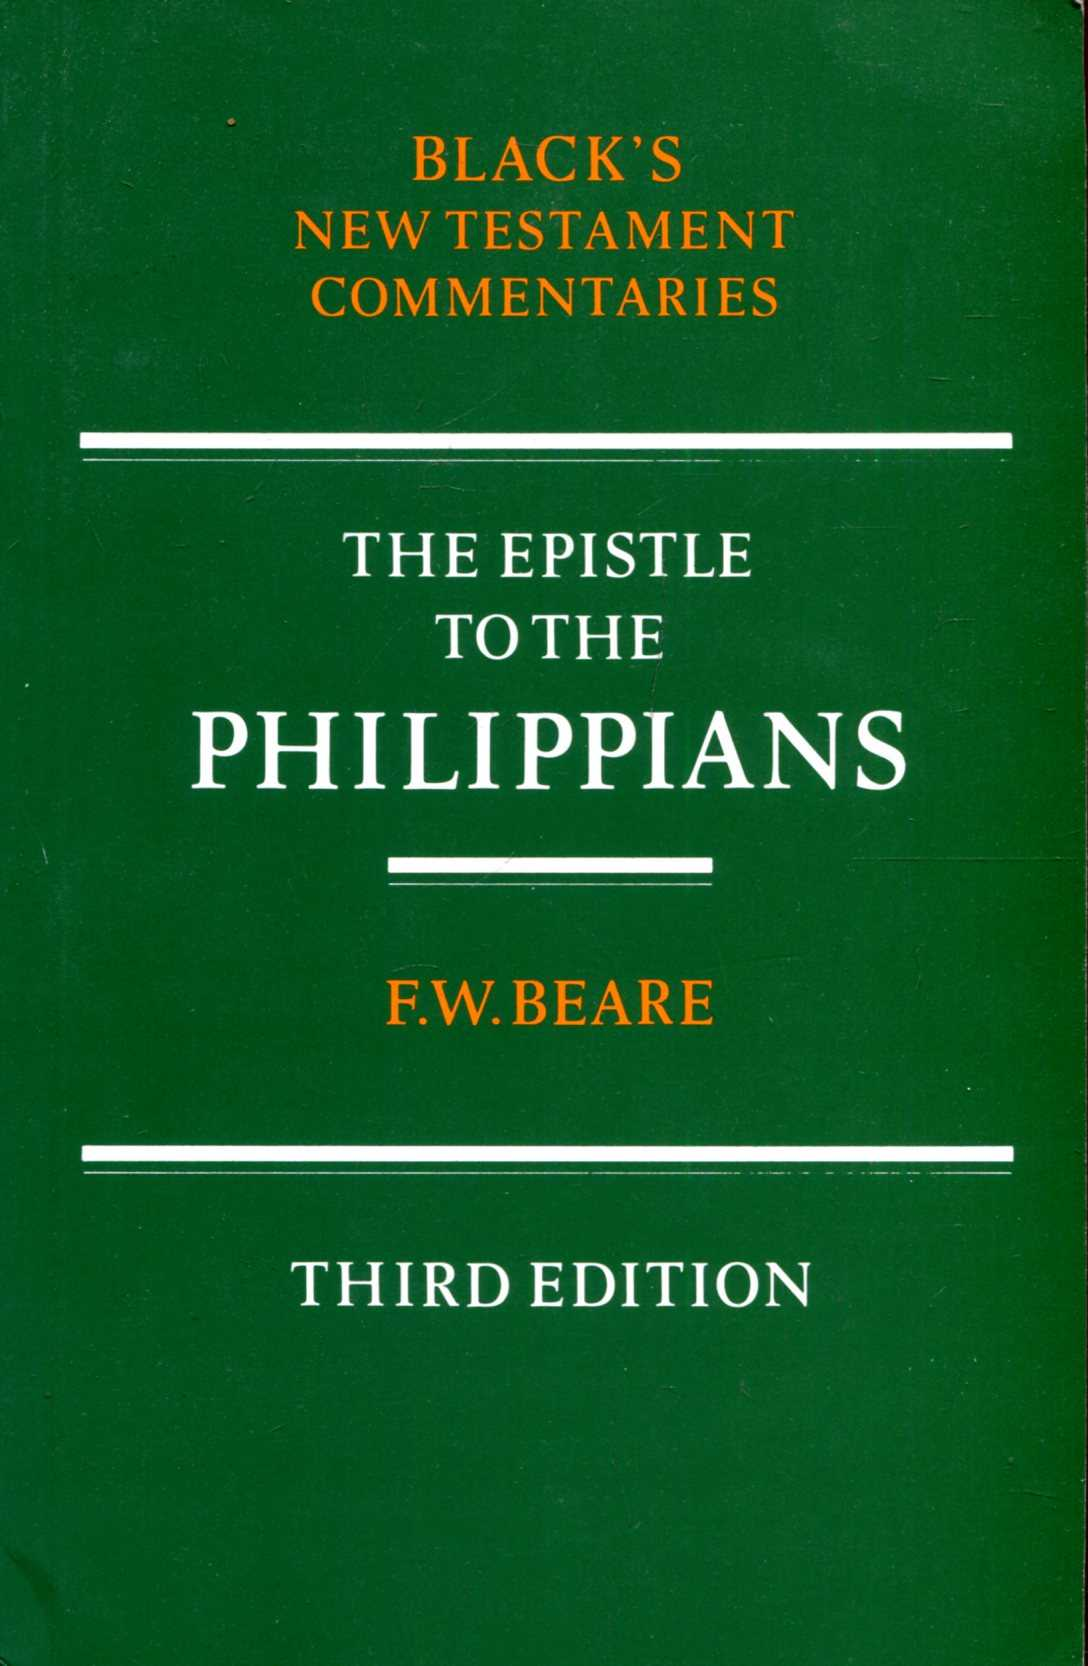 Image for New Testament Commentaries: the Epistle to the Philippians (Black's New Testament Commentaries)